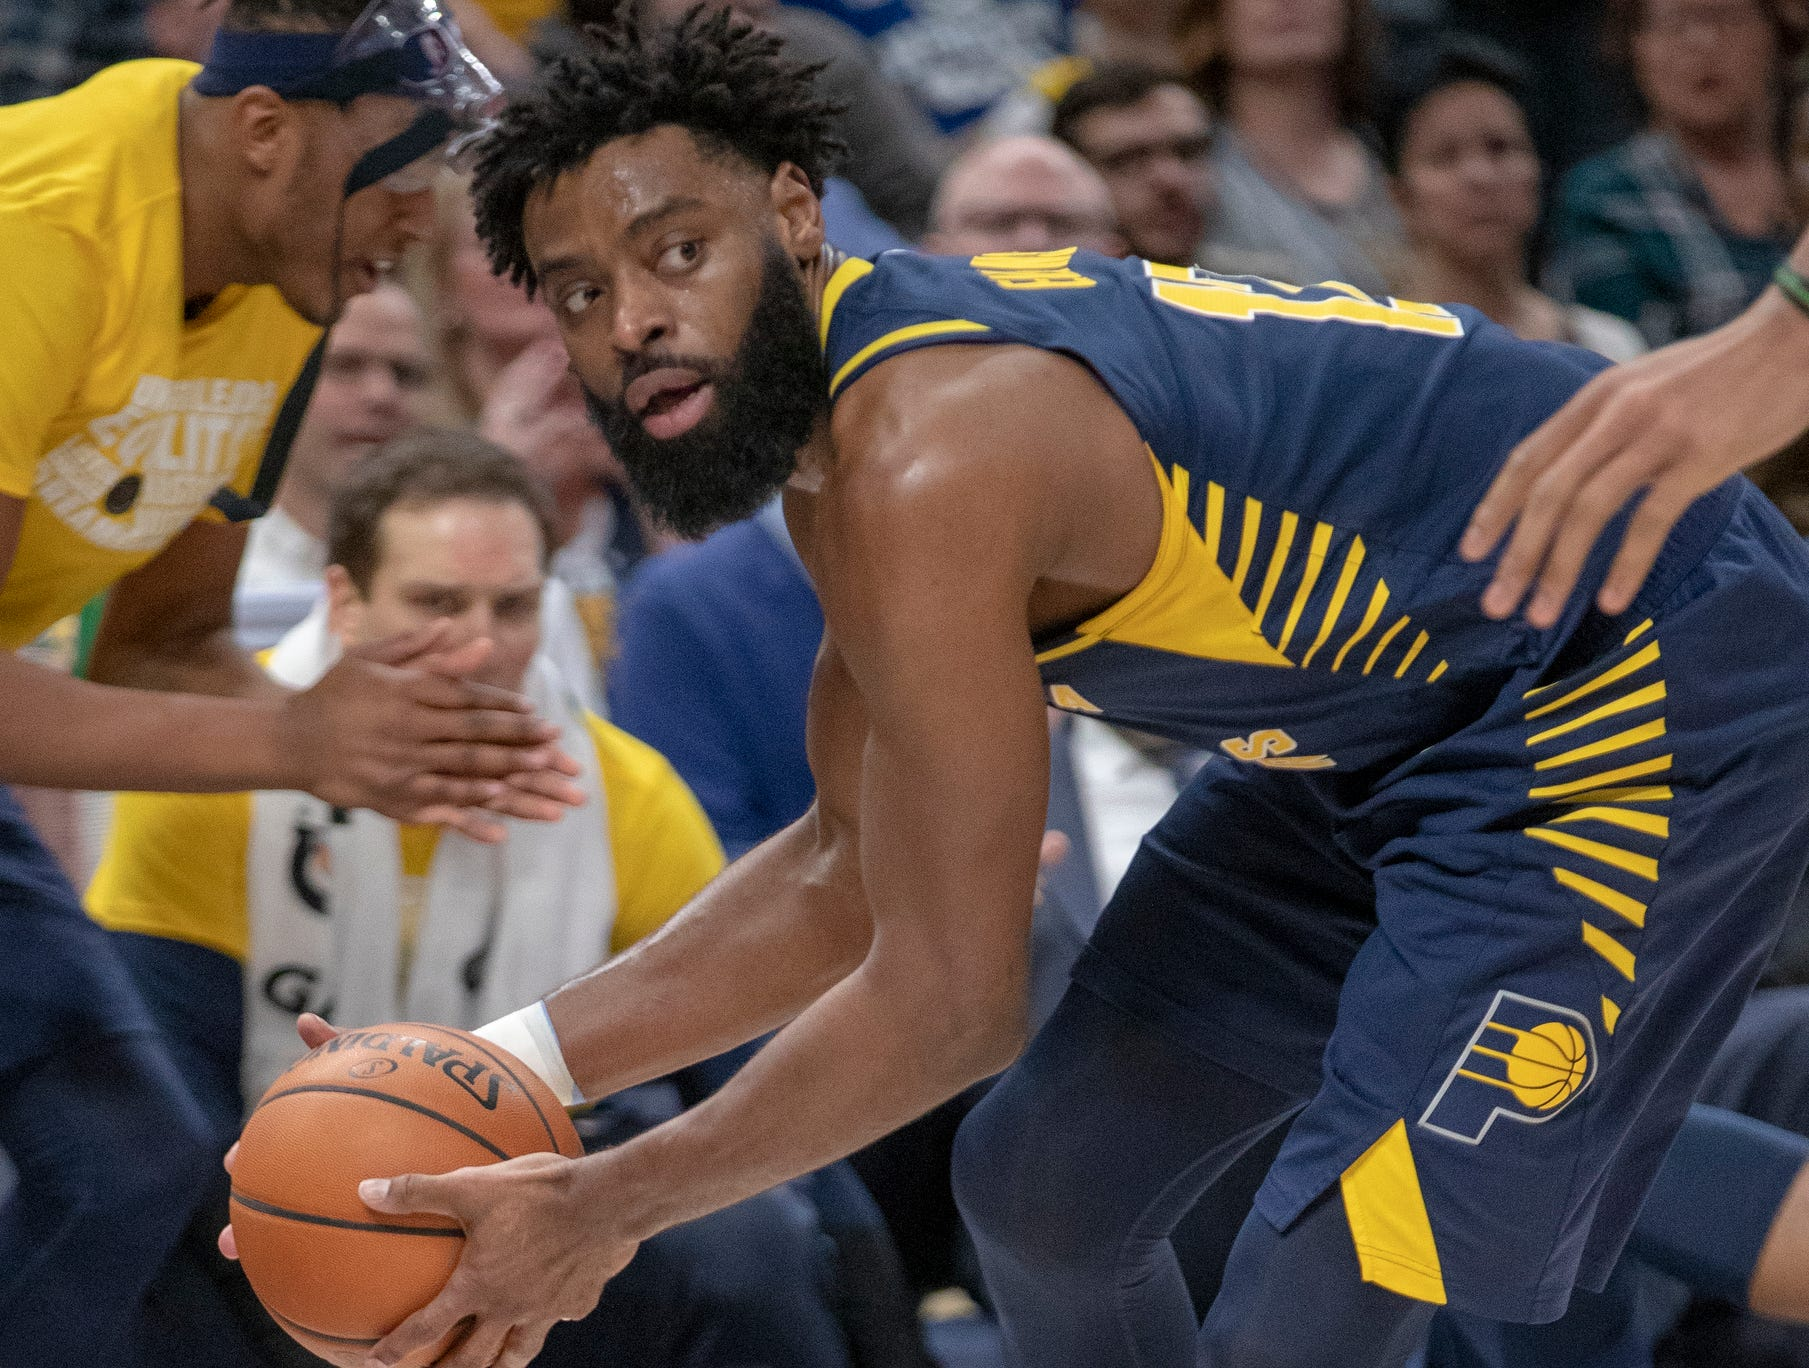 Tyreke Evans of the Indiana Pacers saves a ball from going out of play against Milwaukee, Bankers Life Fieldhouse, Indianapolis, Wednesday, Feb. 13, 2019. Milwaukee won 106-97.